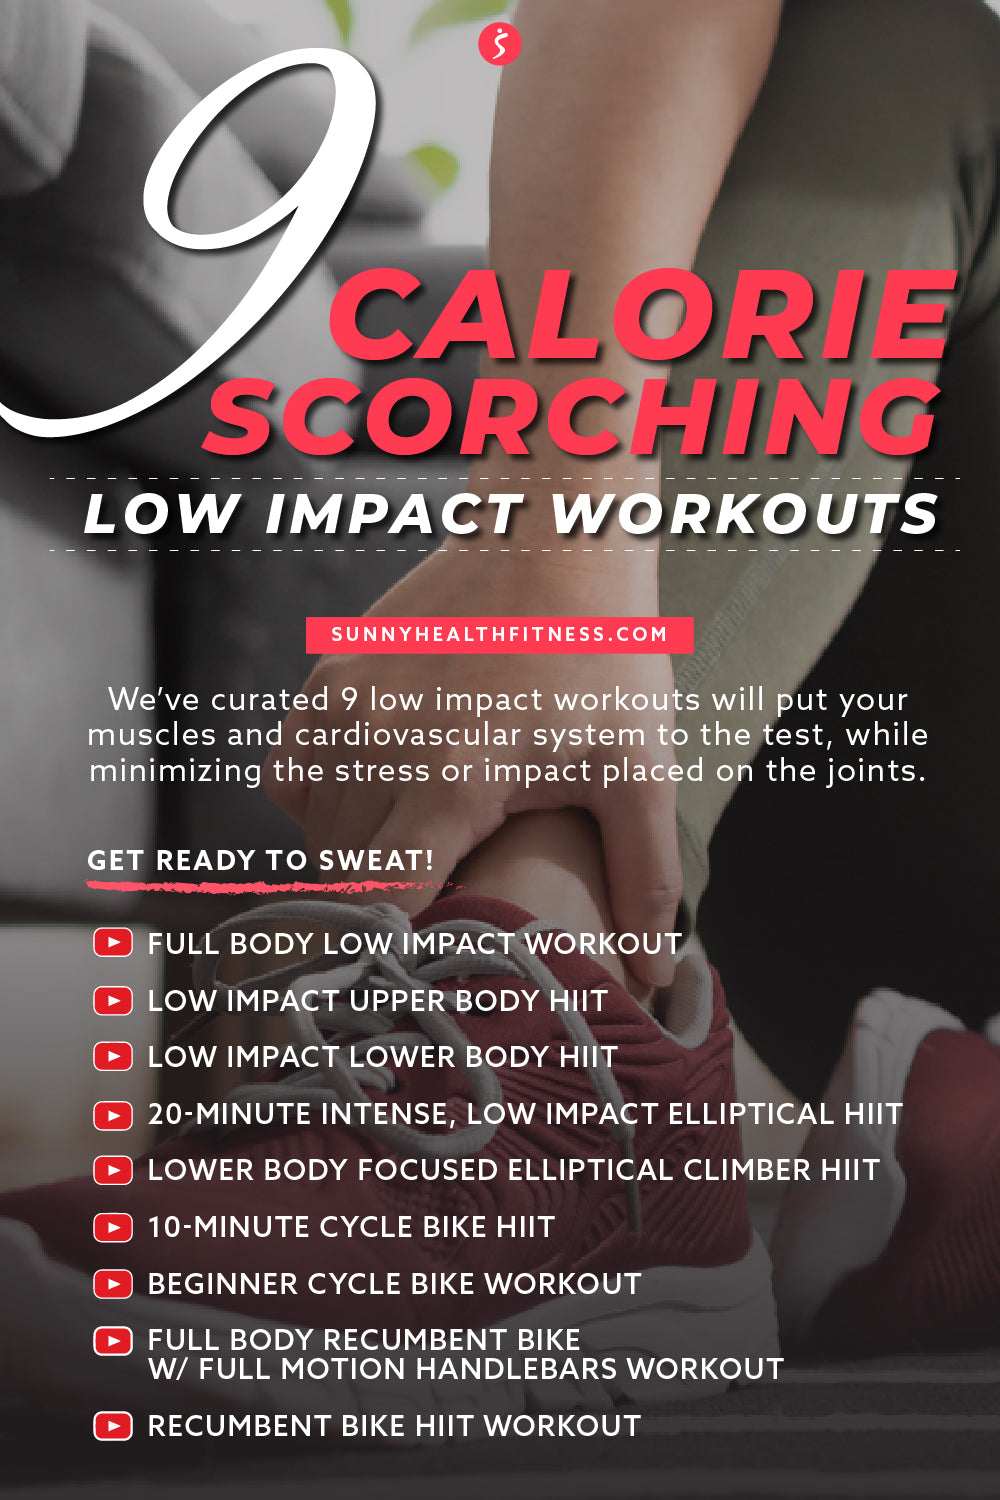 9 Calorie Scorching Low Impact Workouts Infographic